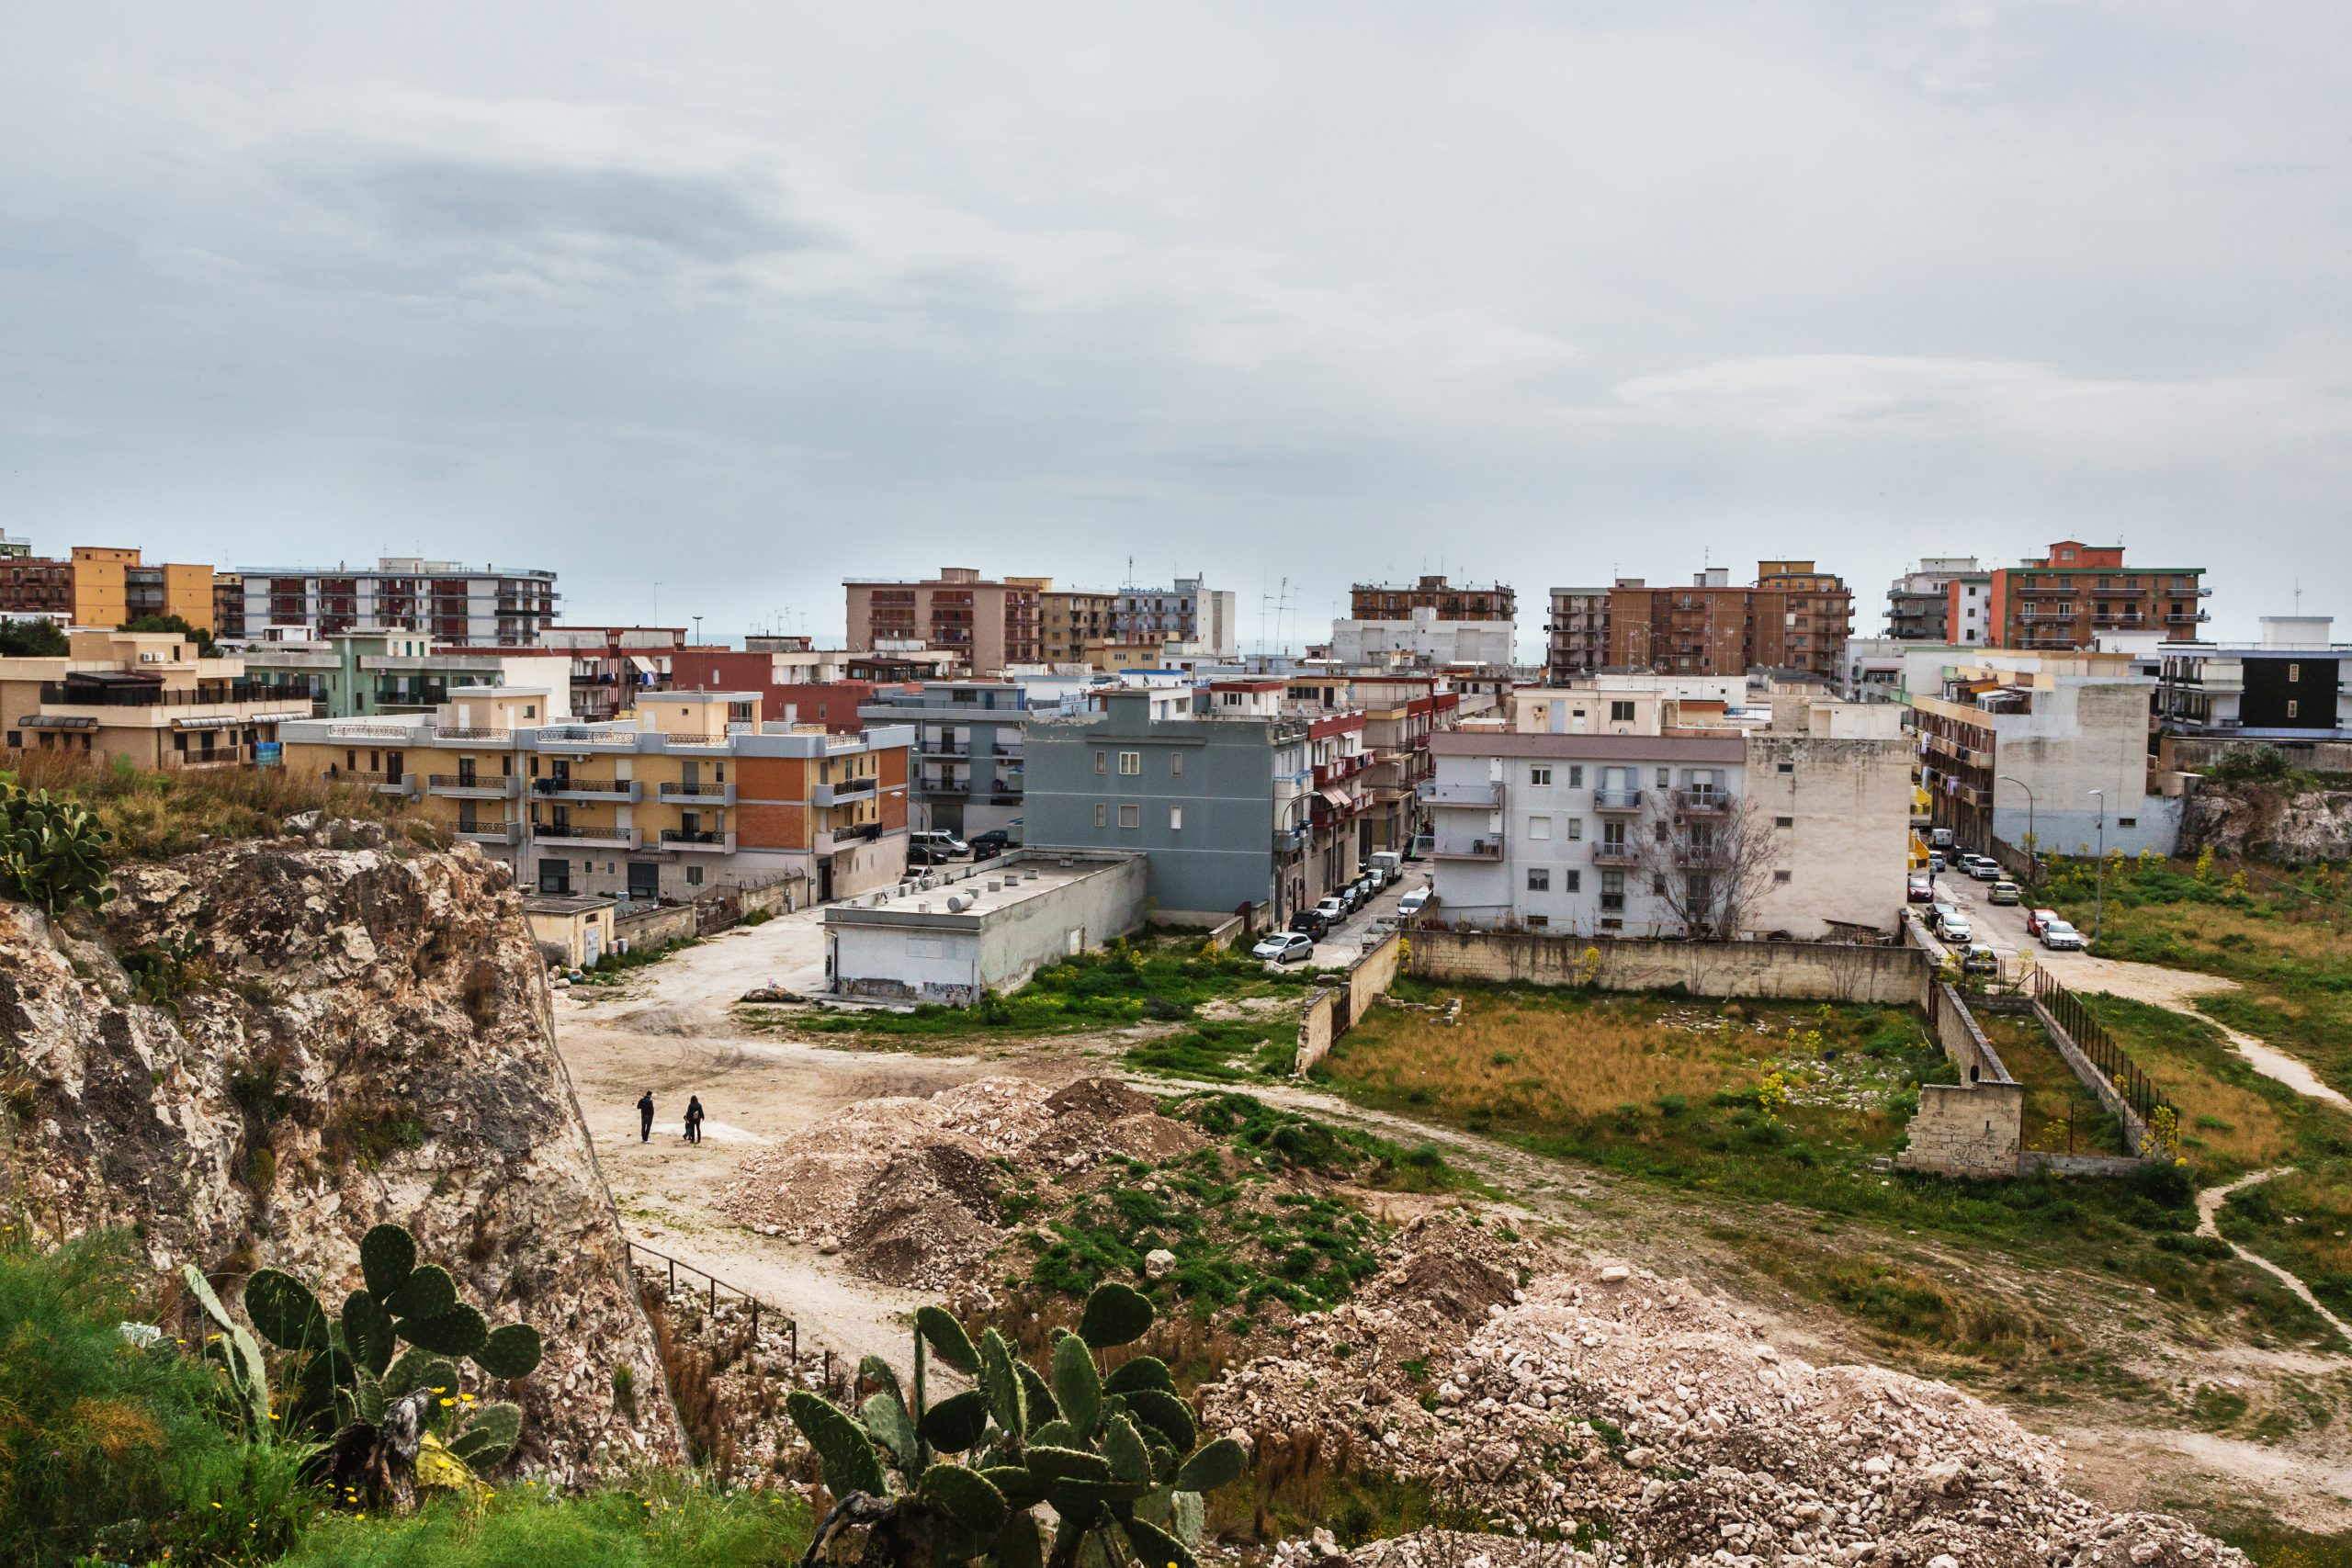 View of the Cava Gramazio district, built on the former quarry of the same name.